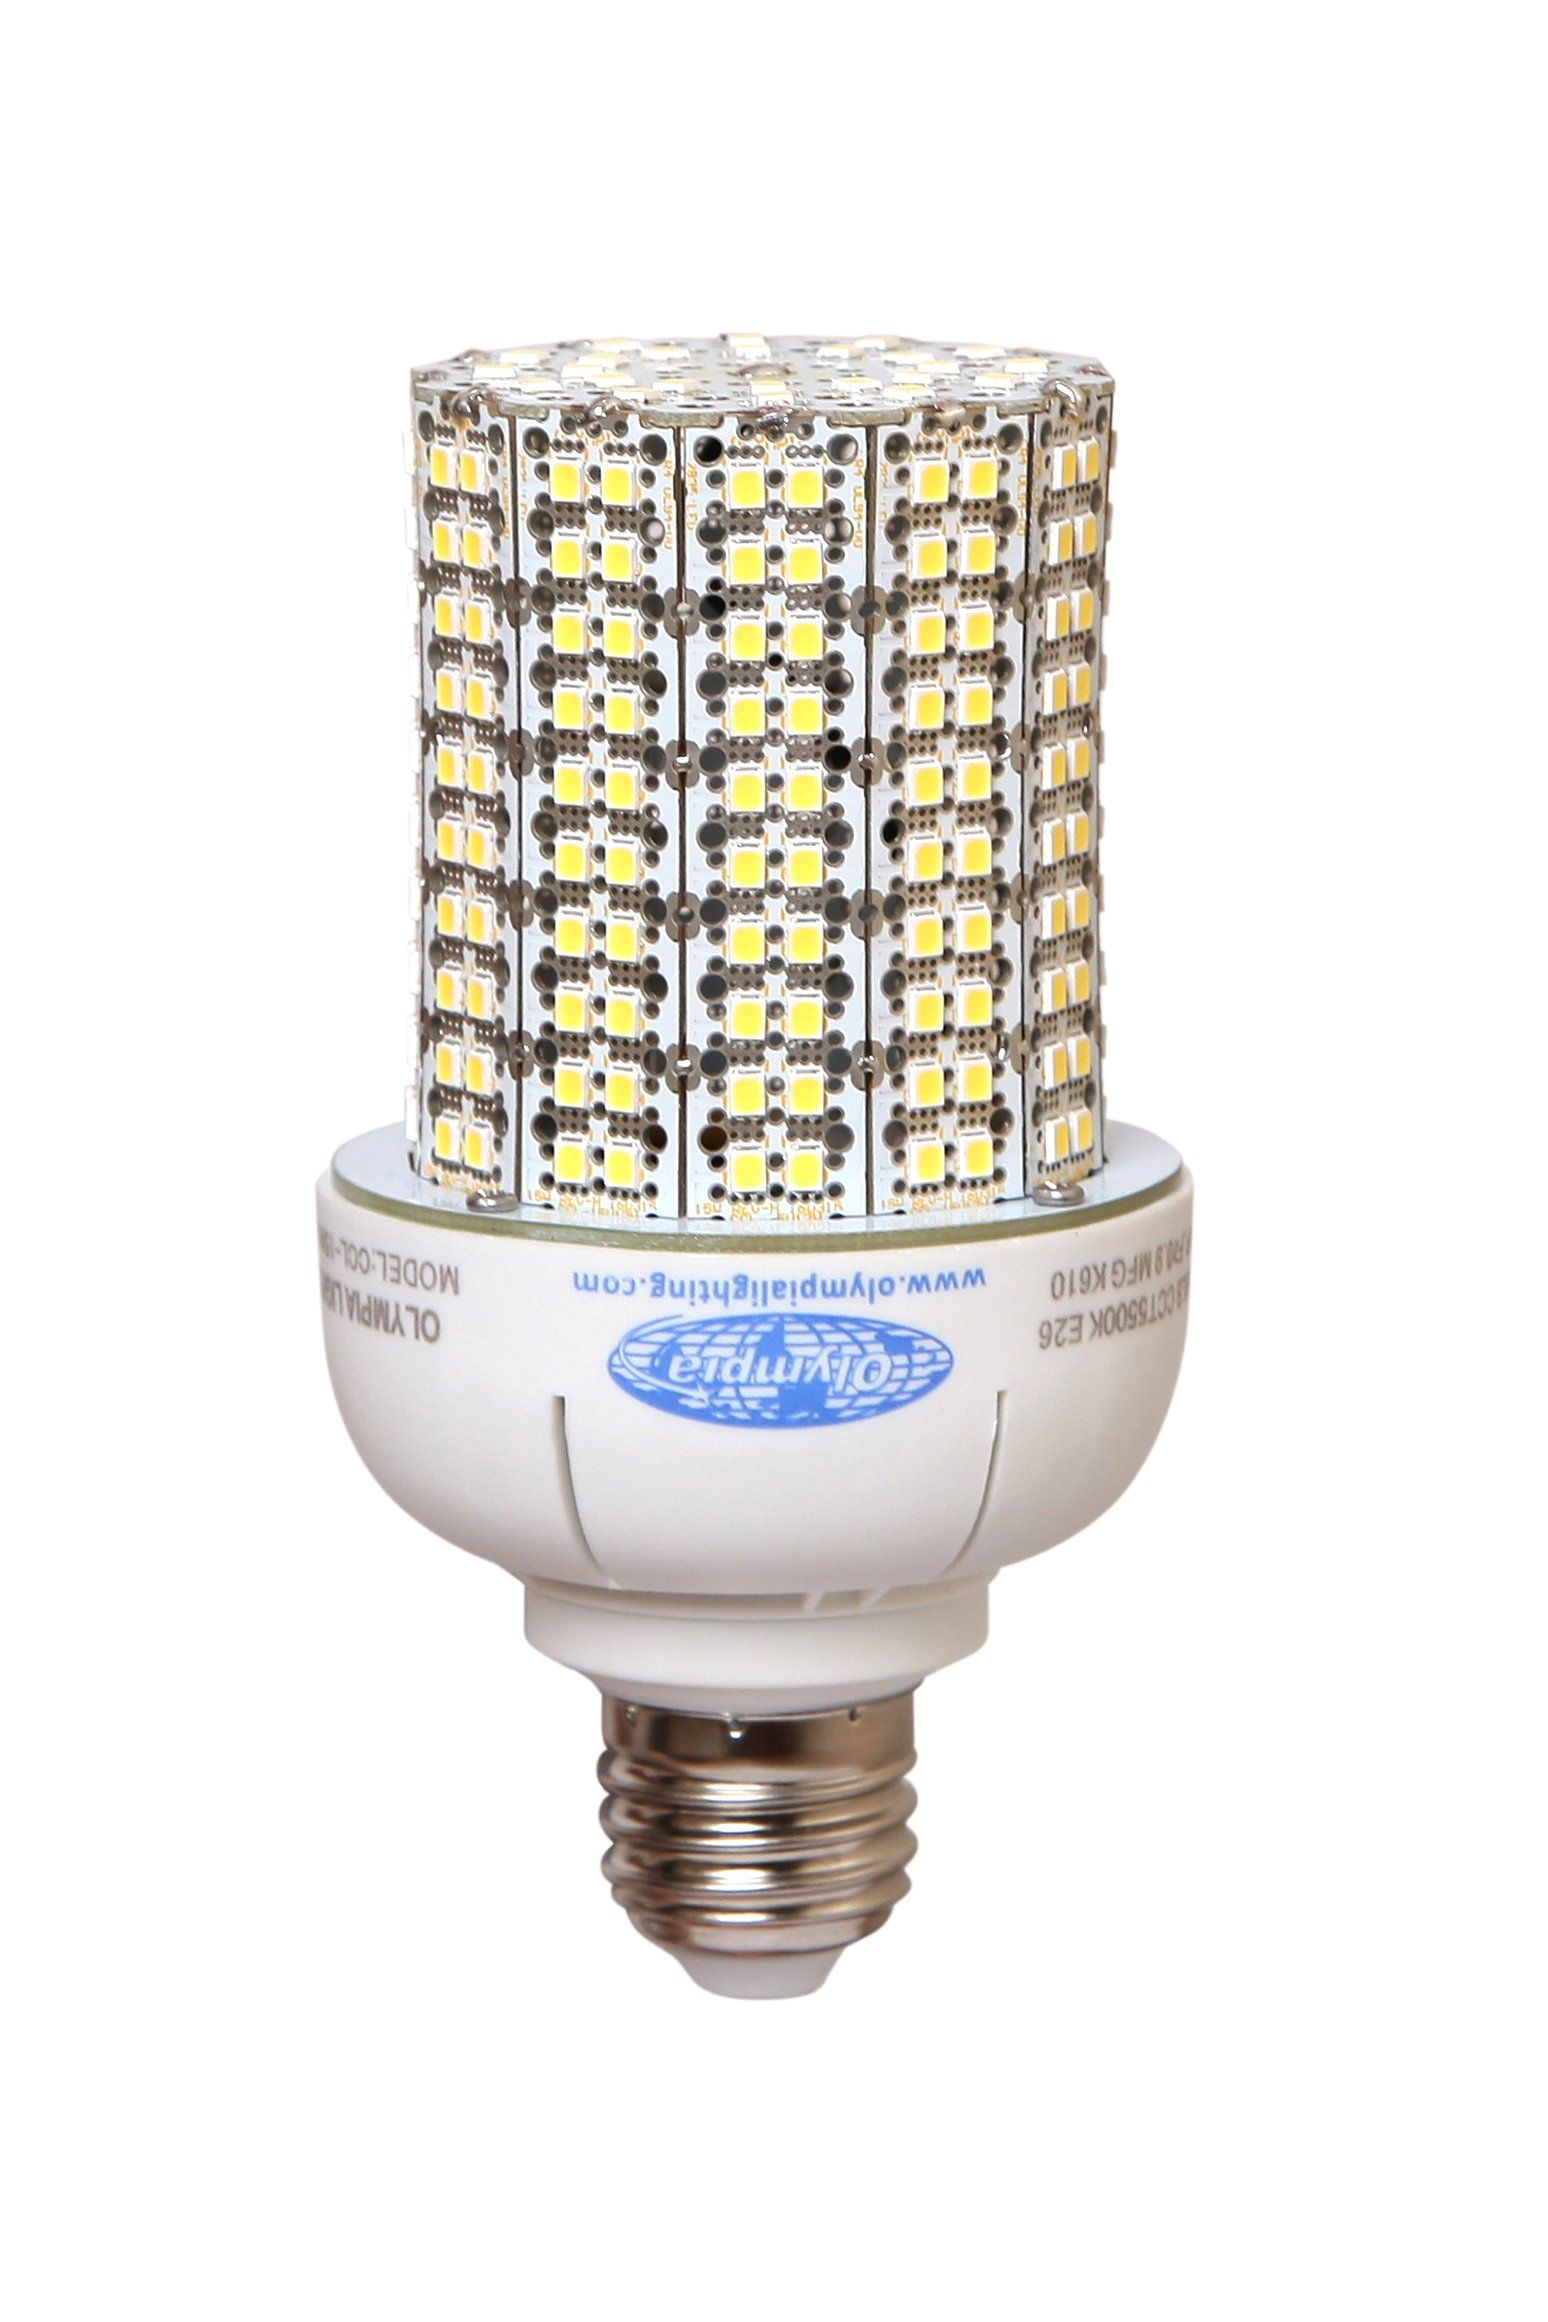 10w Compact Cluster Led Bulb 5500k E26 100277v Replacement For Hid 50w Mhhps Mvp And Cfl 26w Click Picture To Examine More Informat Led Bulb Bulb Light Bulb